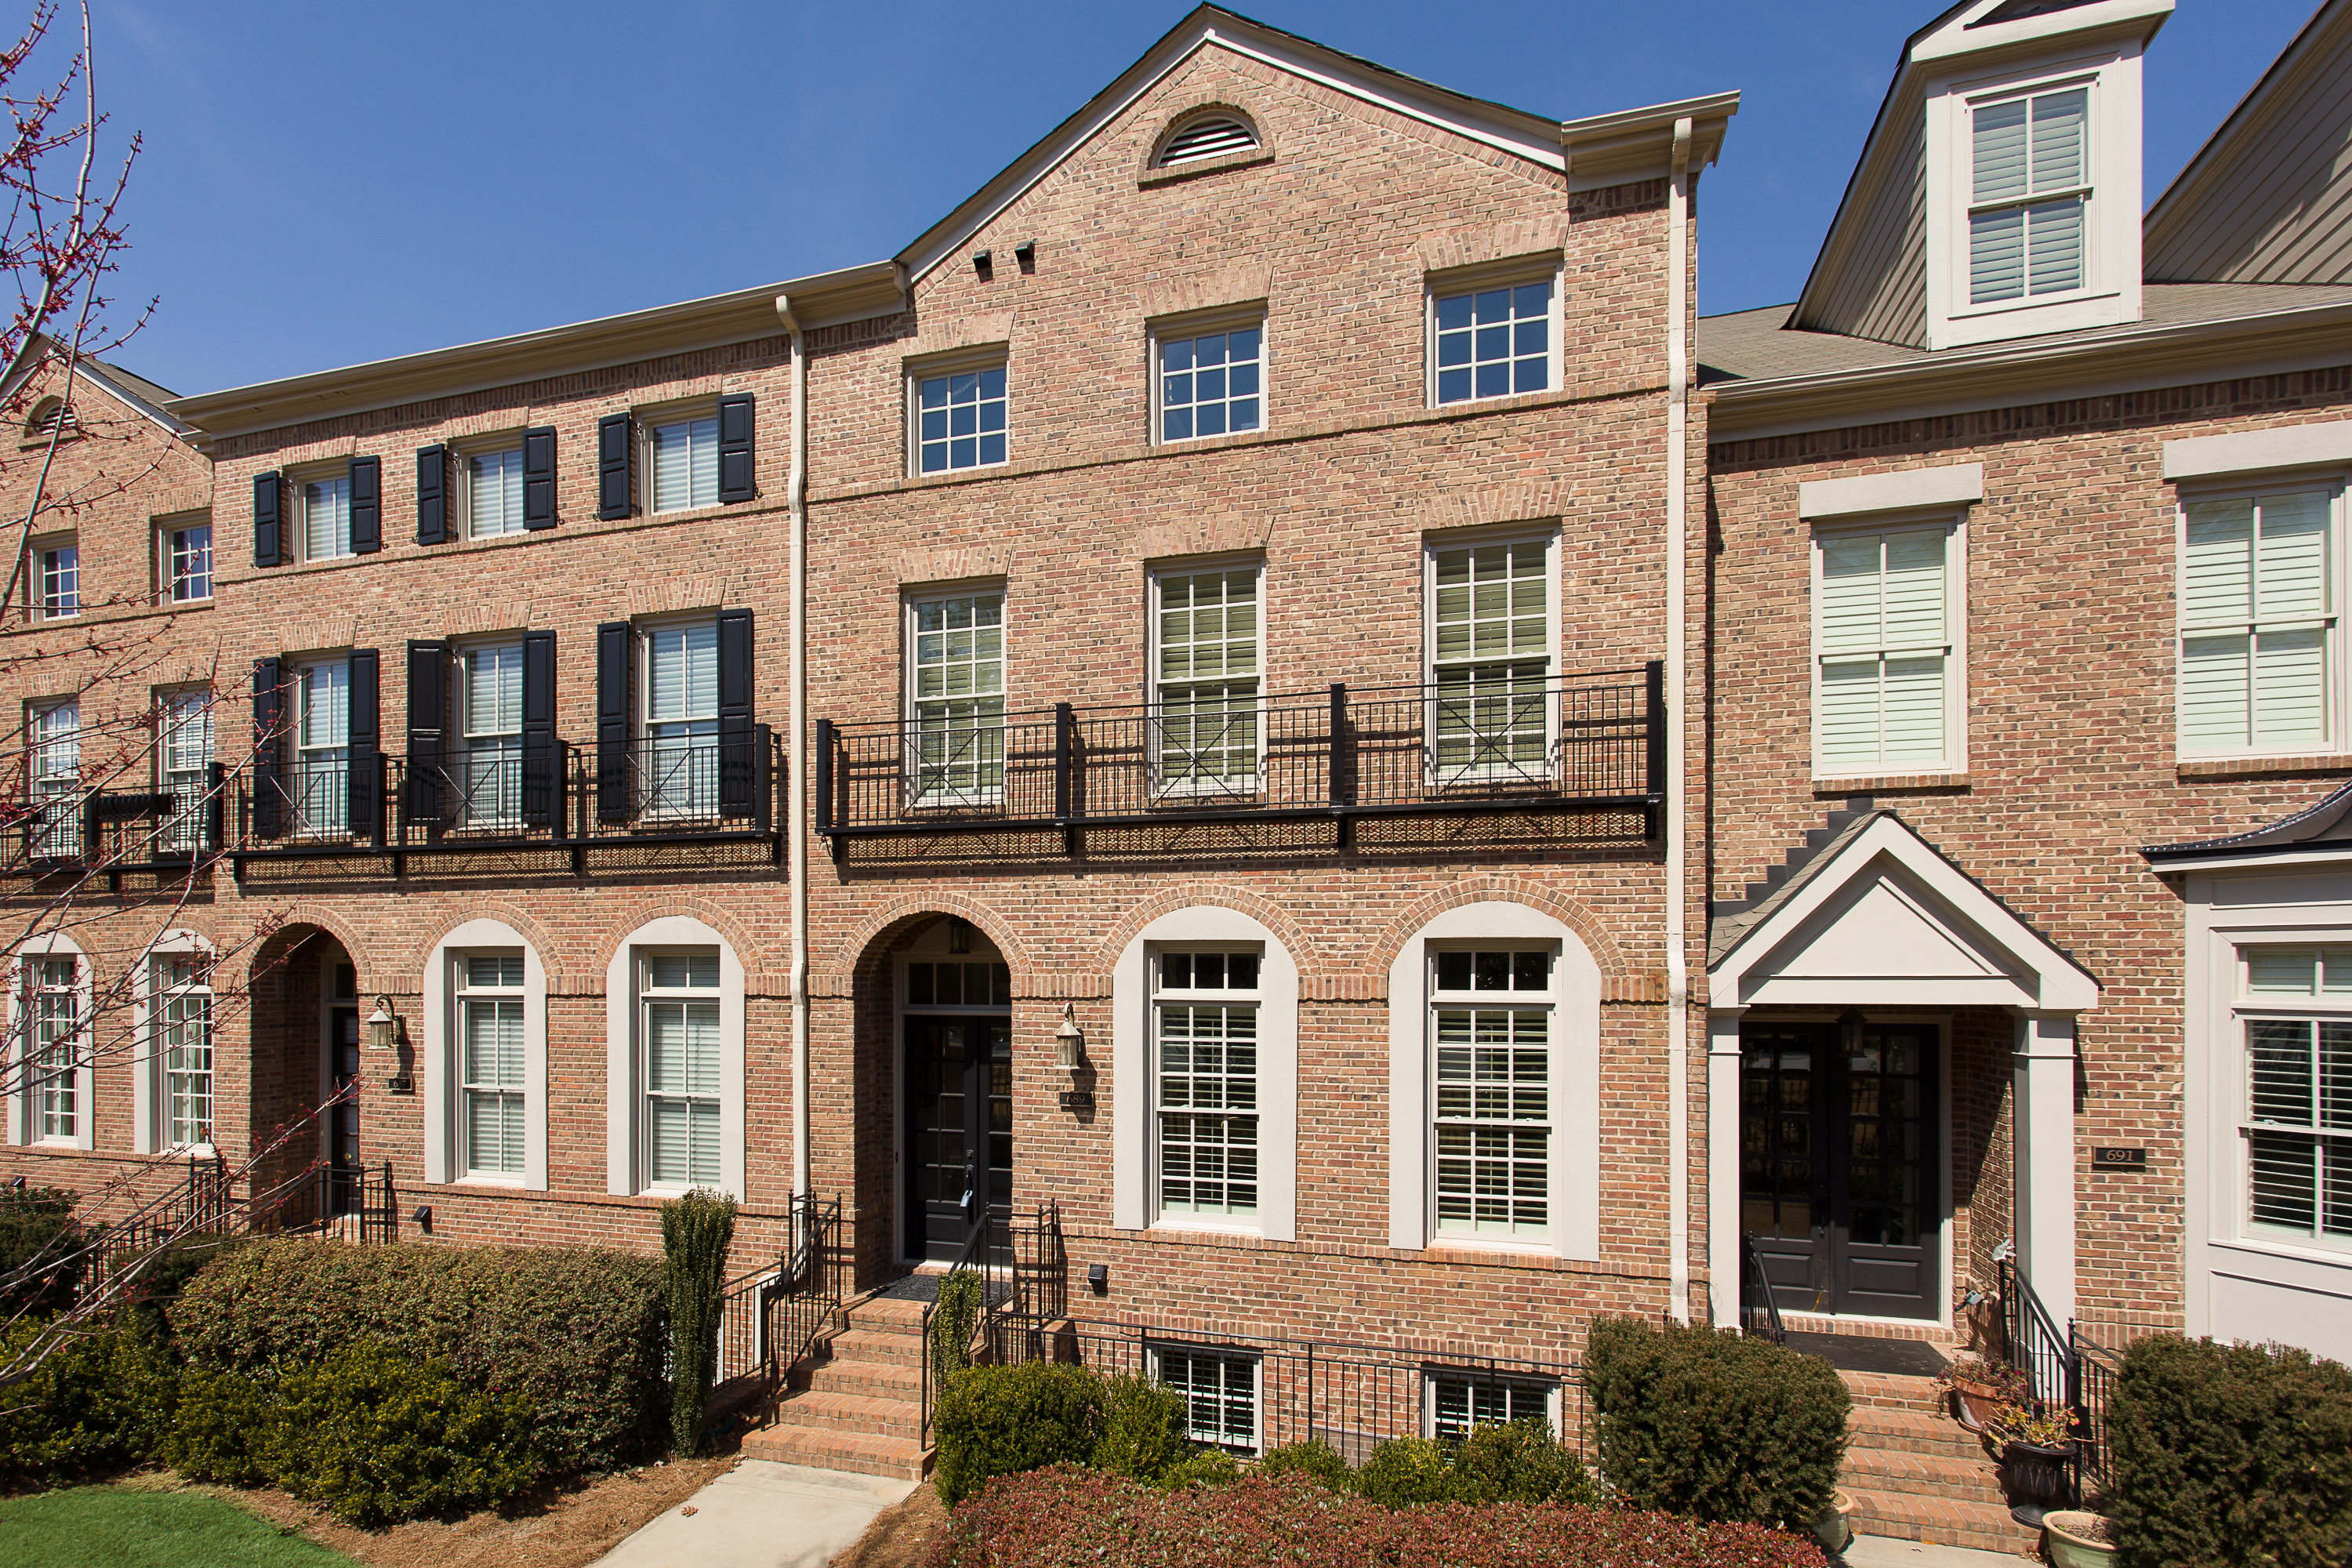 Casa Unifamiliar Adosada por un Venta en Luxury Townhome in Gated Community Just North of Buckhead 689 Lockton Place Atlanta, Georgia 30342 Estados Unidos